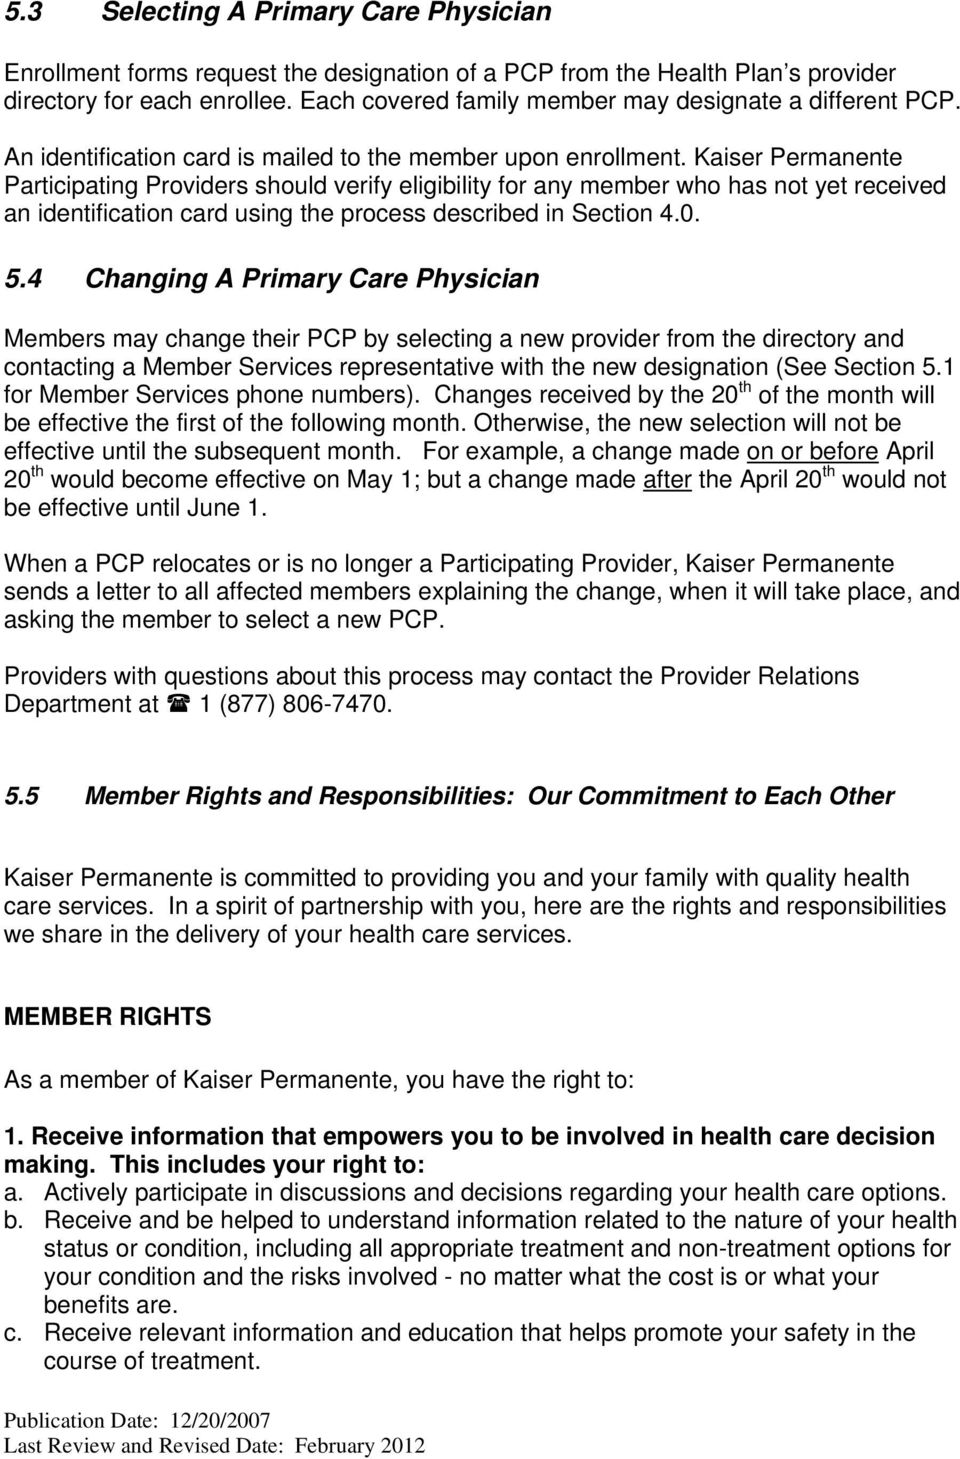 Kaiser Permanente Participating Providers should verify eligibility for any member who has not yet received an identification card using the process described in Section 4.0. 5.